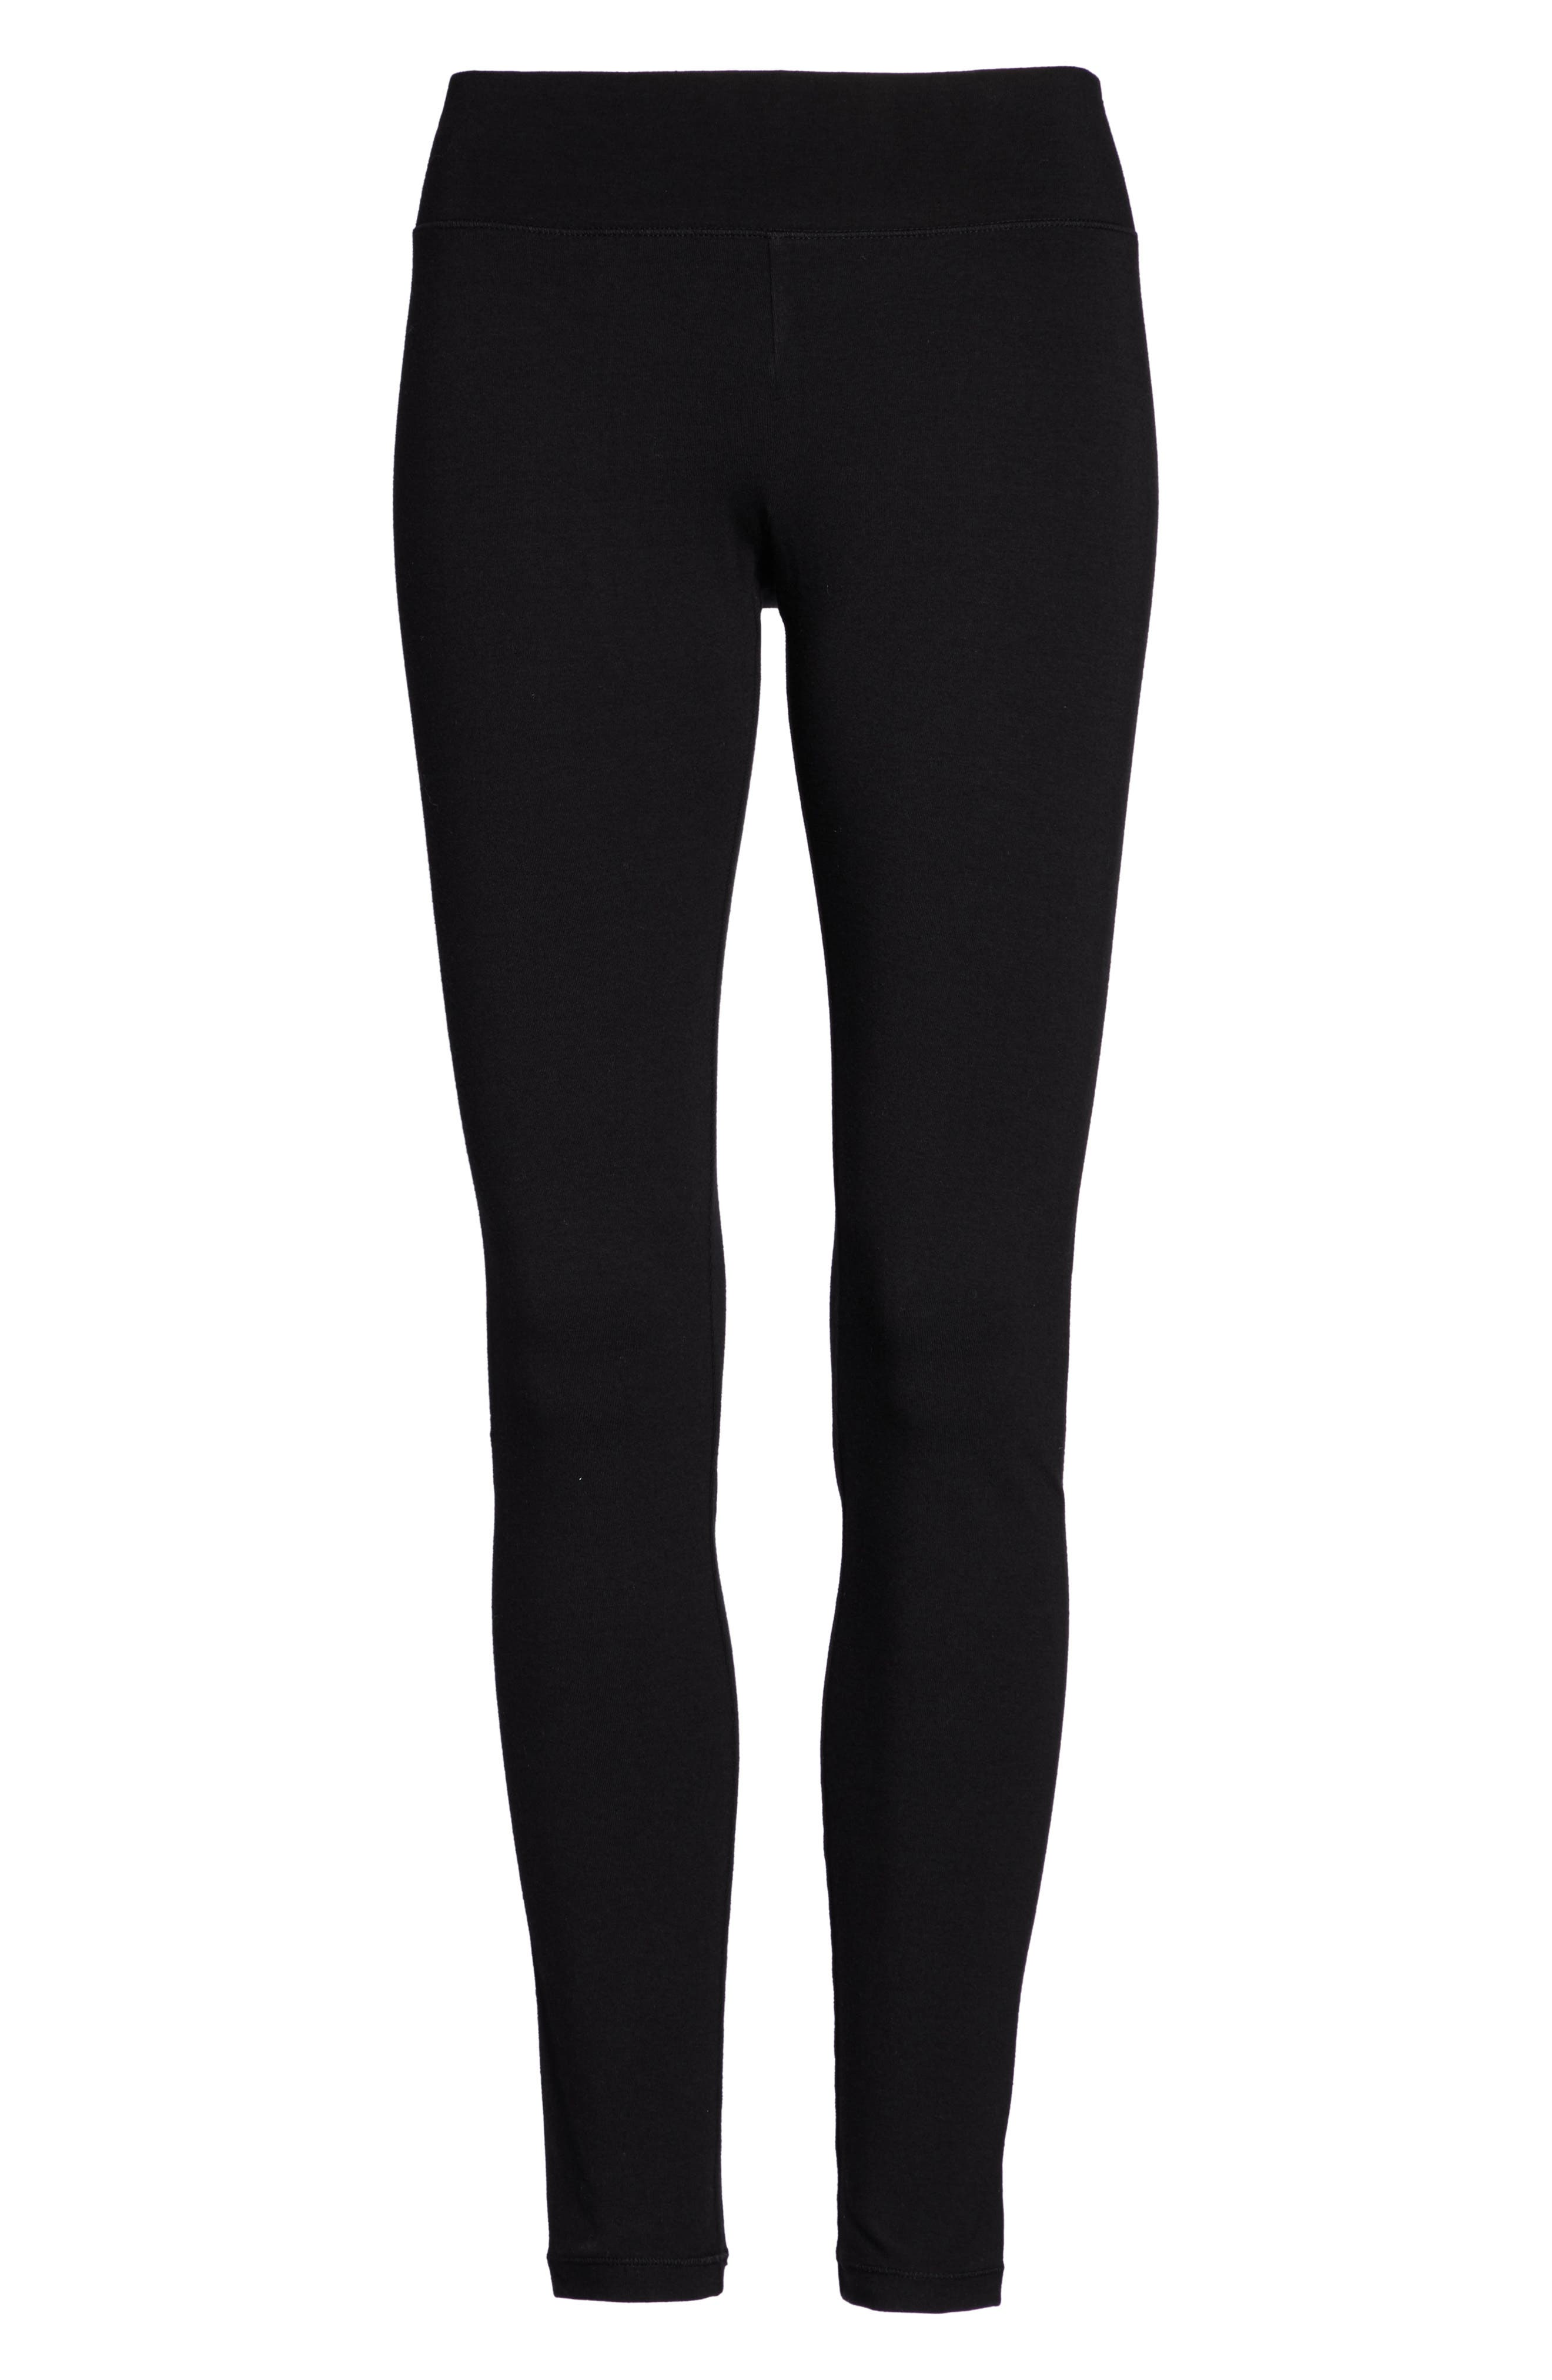 Ultra Wide Waistband Leggings,                             Alternate thumbnail 2, color,                             001